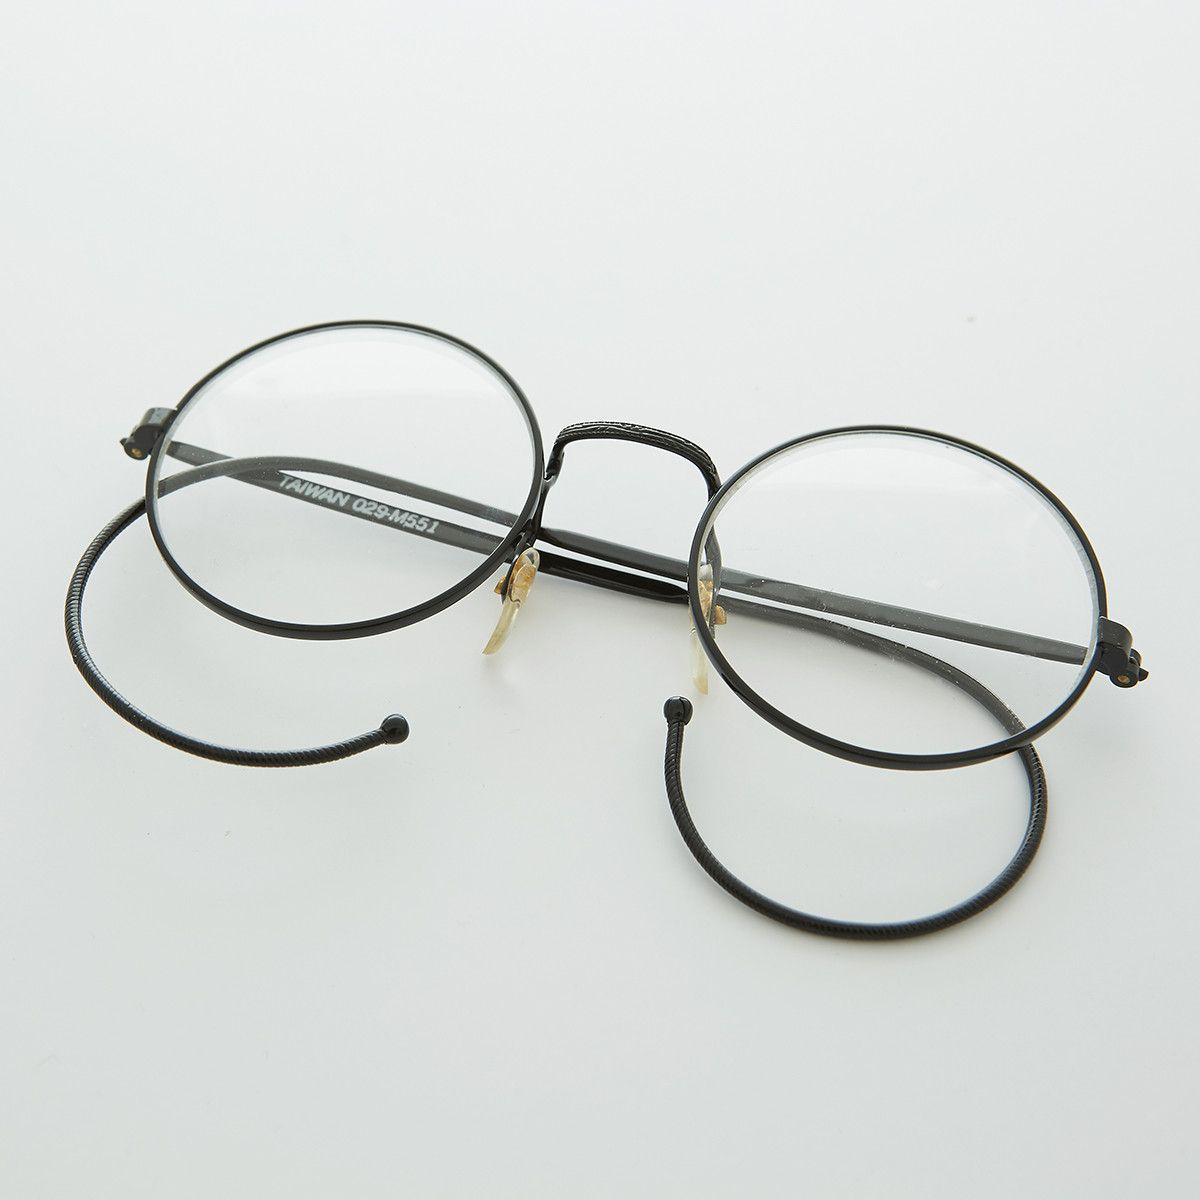 9cd4e0dc9e4c1 Round John Lennon Victorian Spectacle Vintage Eyeglasses with Cable ...